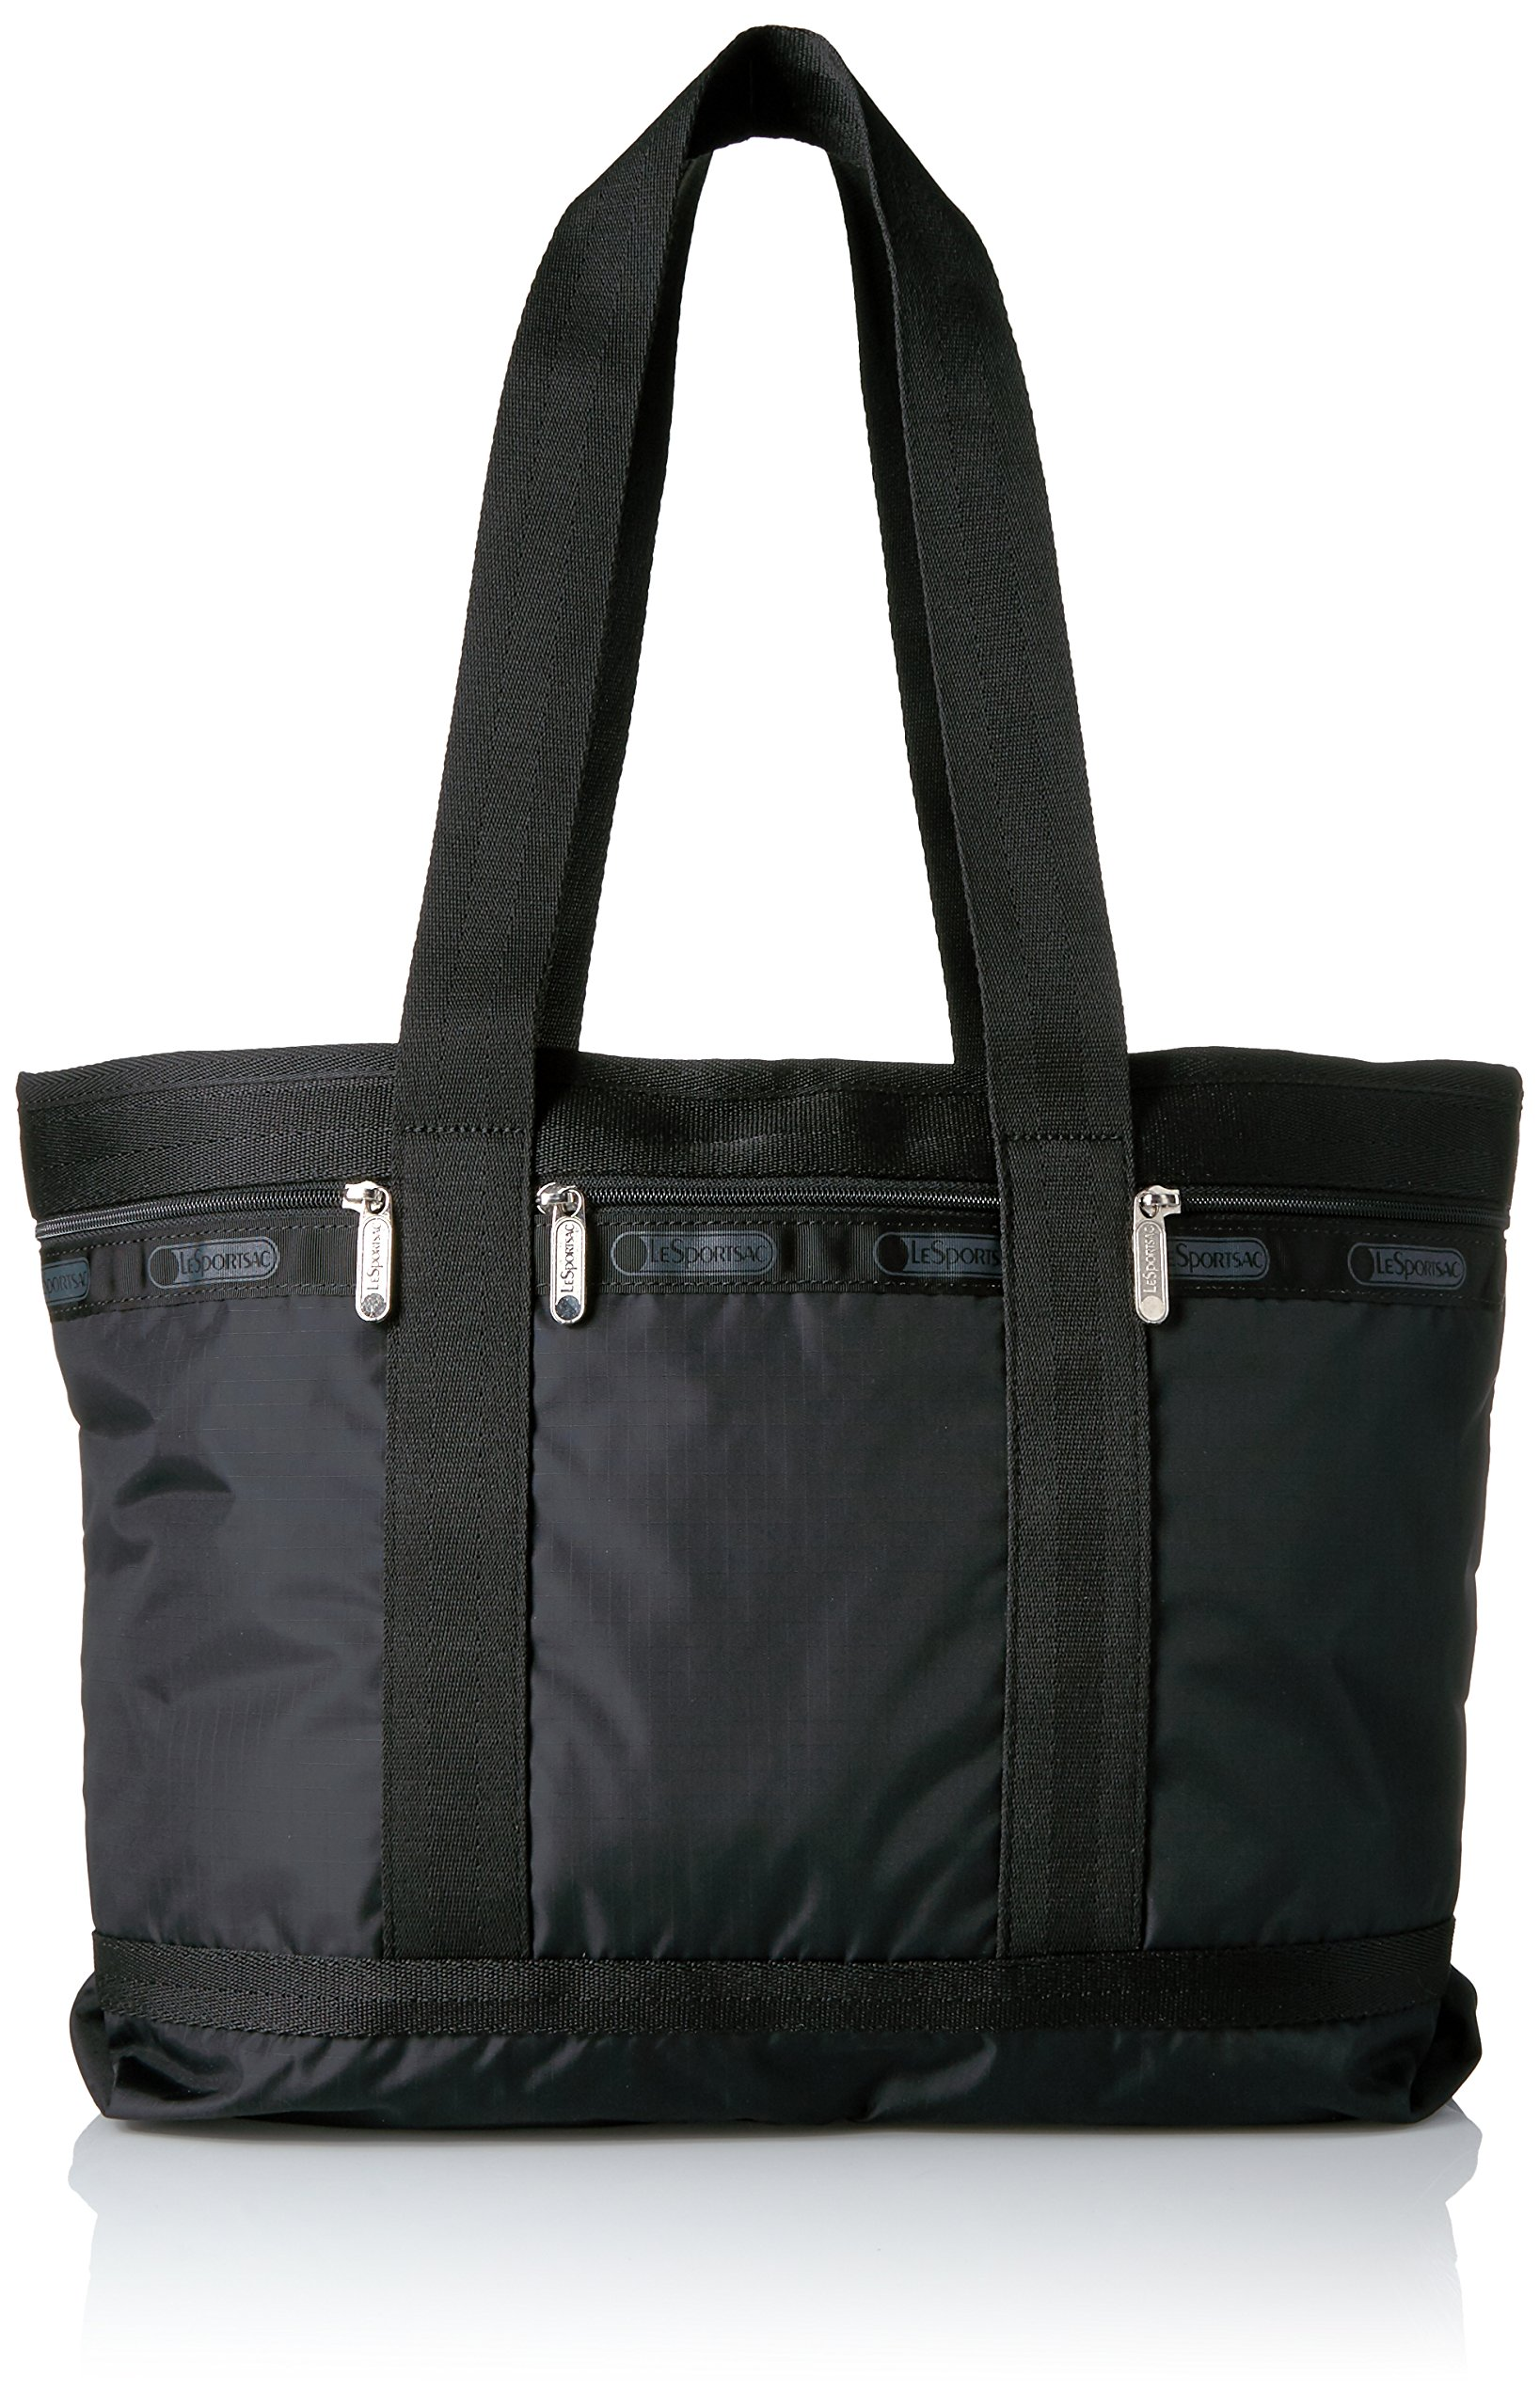 LeSportsac Classic Medium Travel Tote, Black